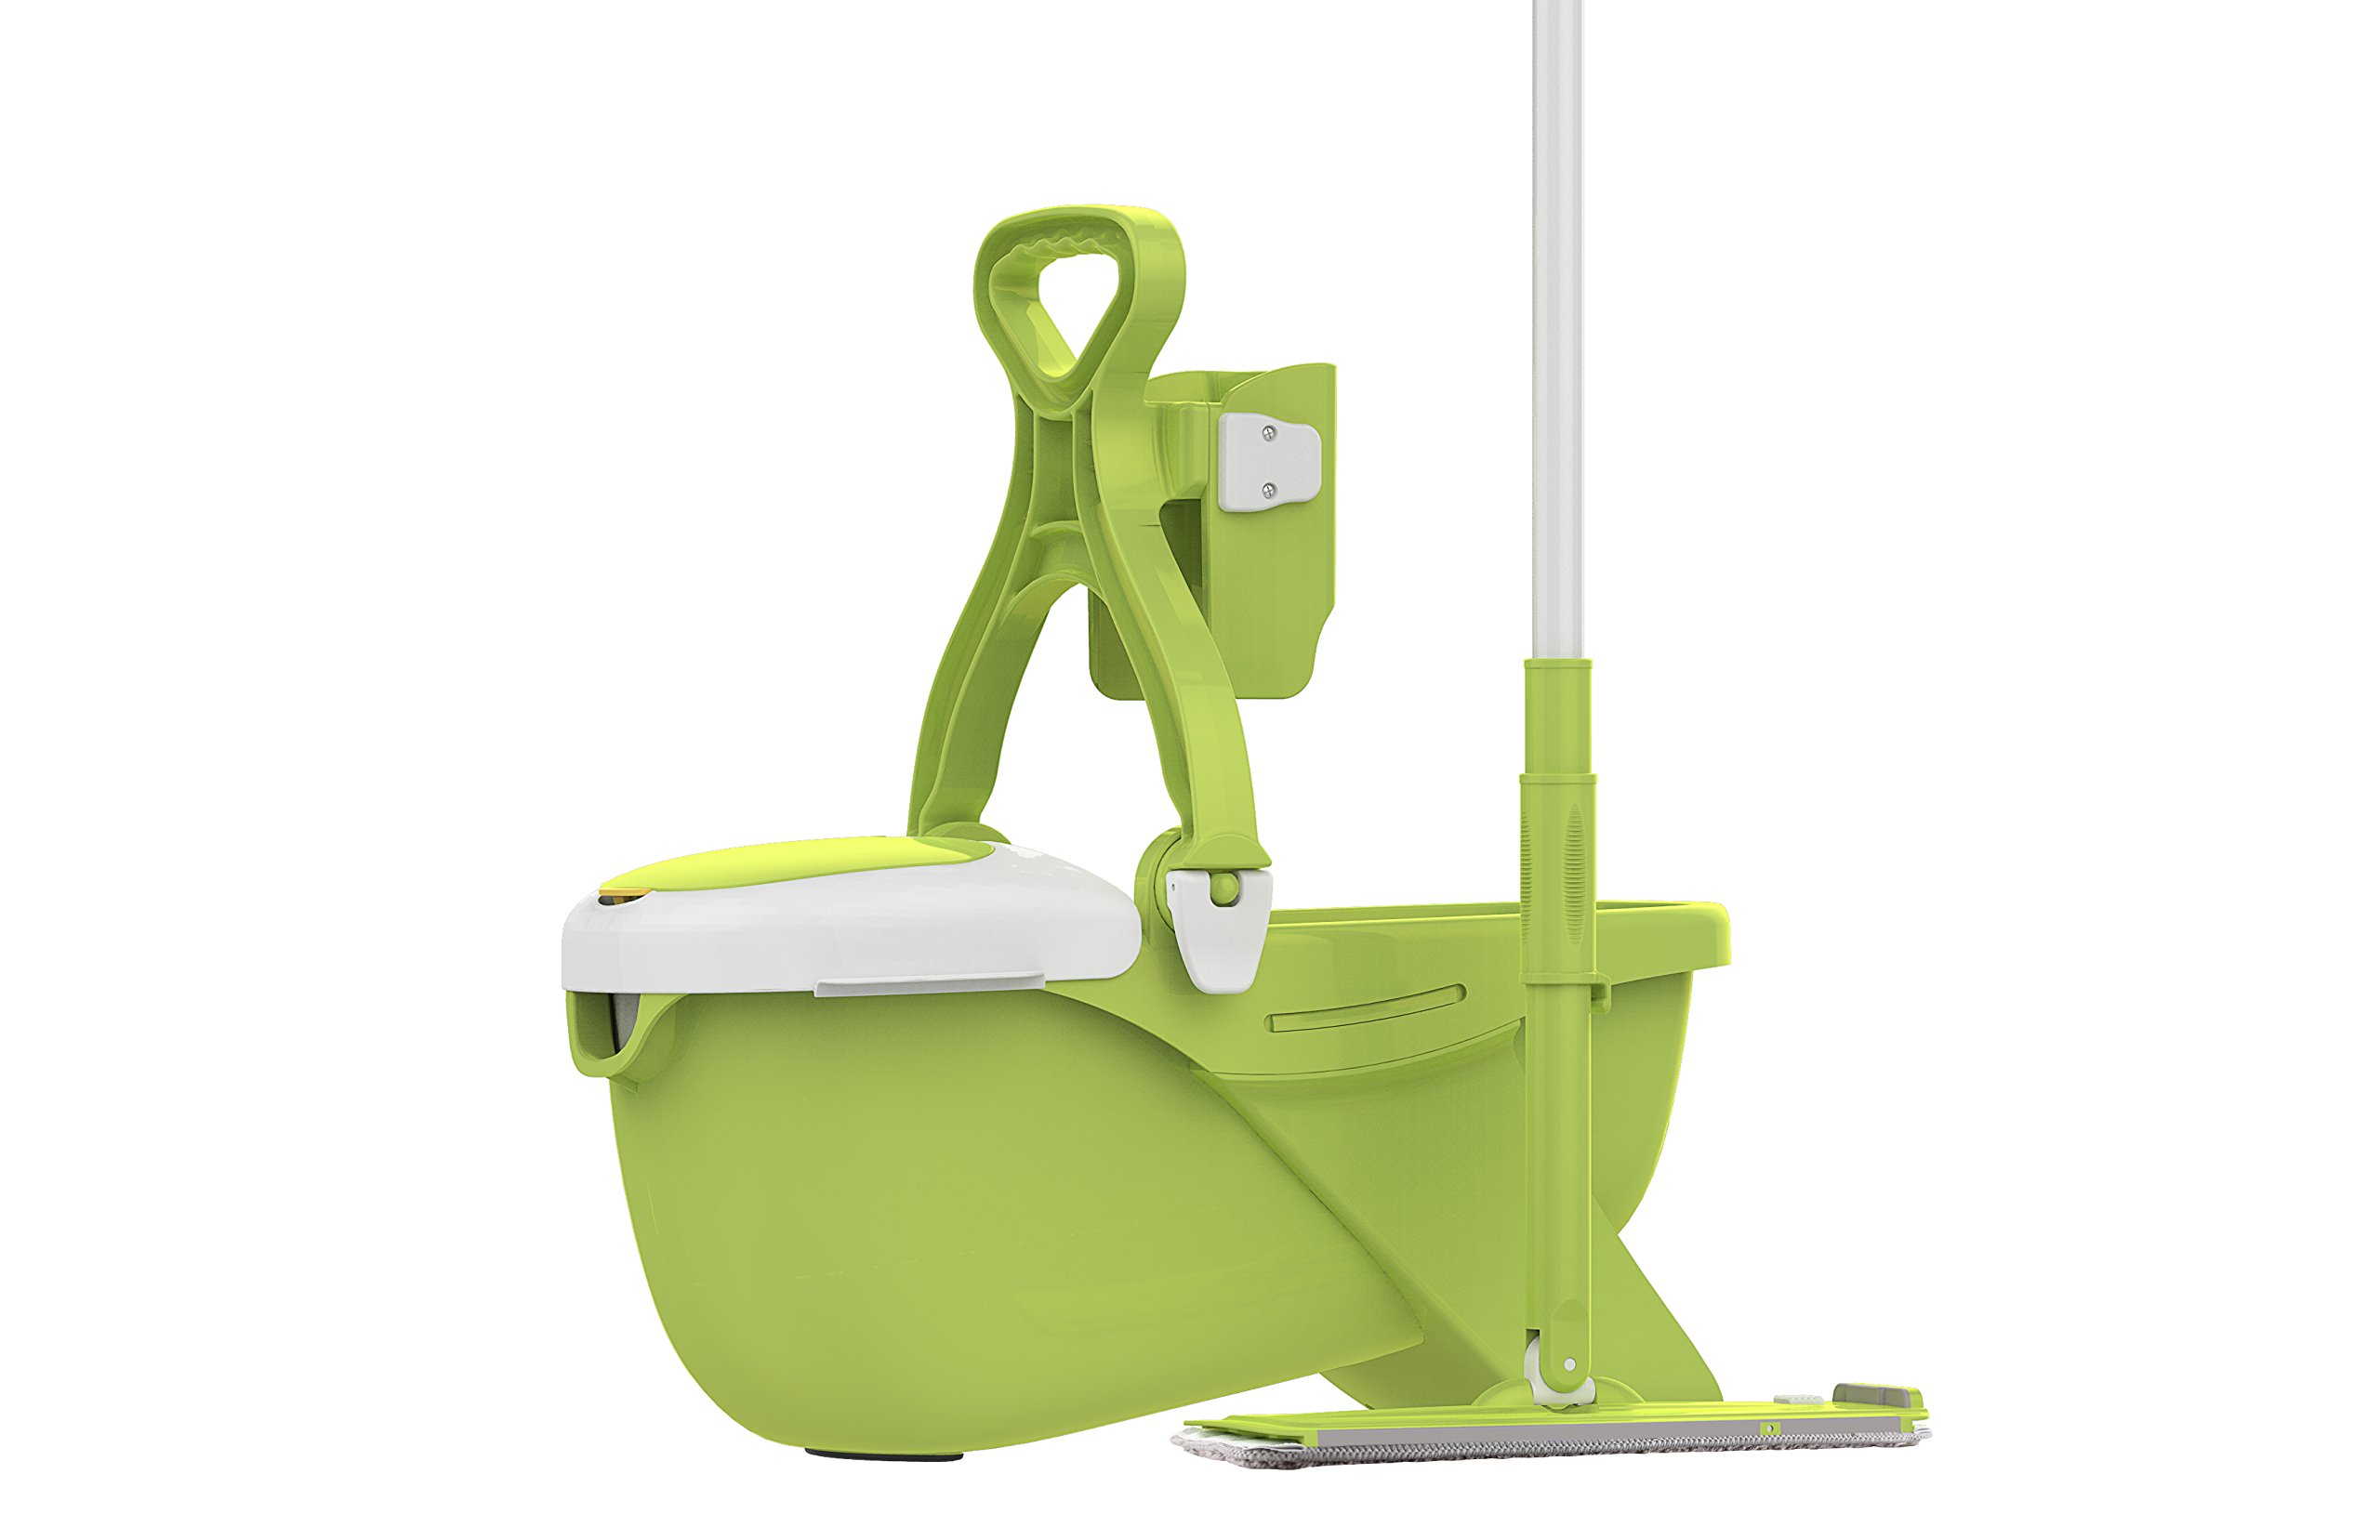 Mee'life Indoor Removable Mop and Bucket Green Deluxe Cleaning System Household Convenient Save Labour Humanized, Mopping Tool Set Extra 2 Mop Replacement Cloth,1Scraper and 1 Brush